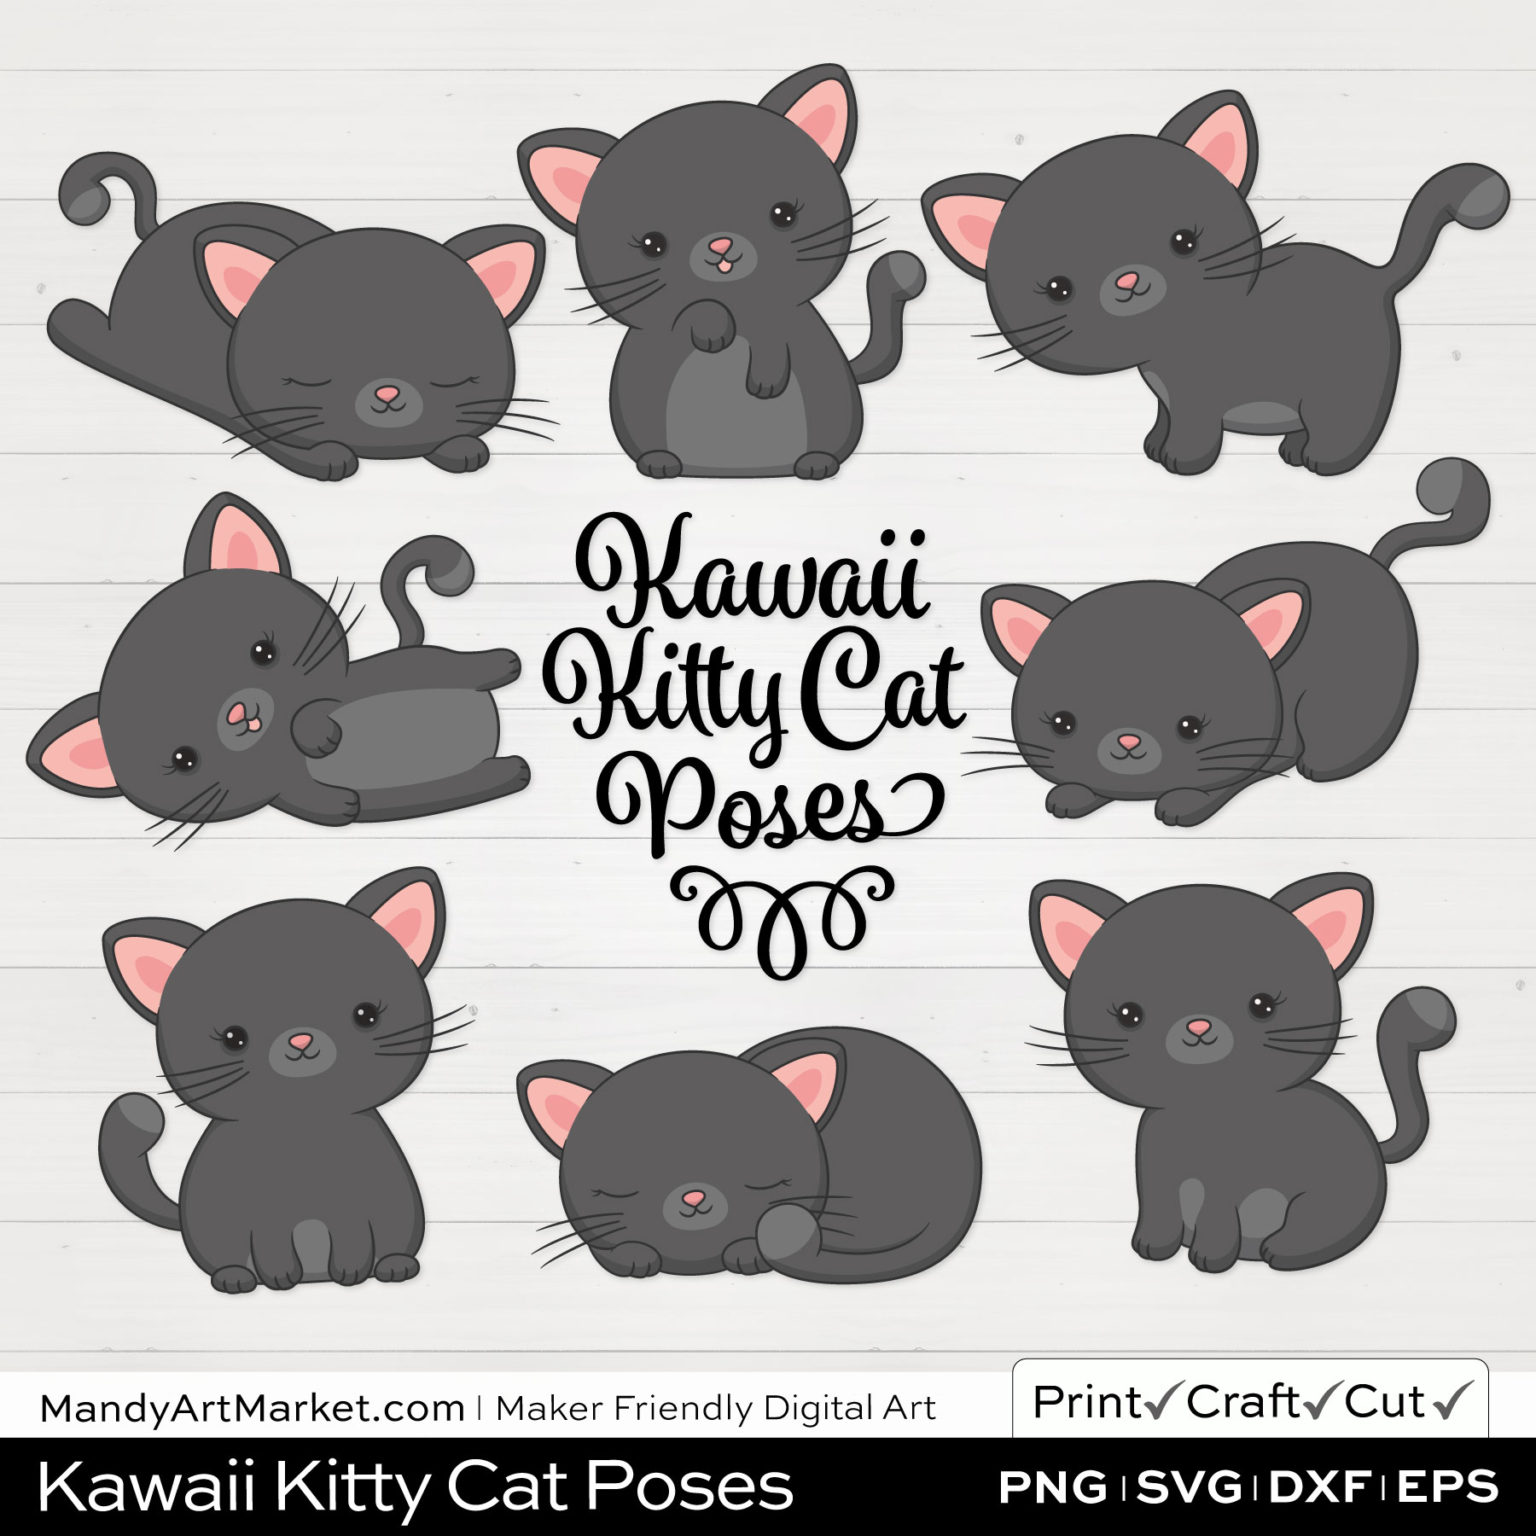 Shadow Gray Kawaii Kitty Cat Poses Clipart on White Background